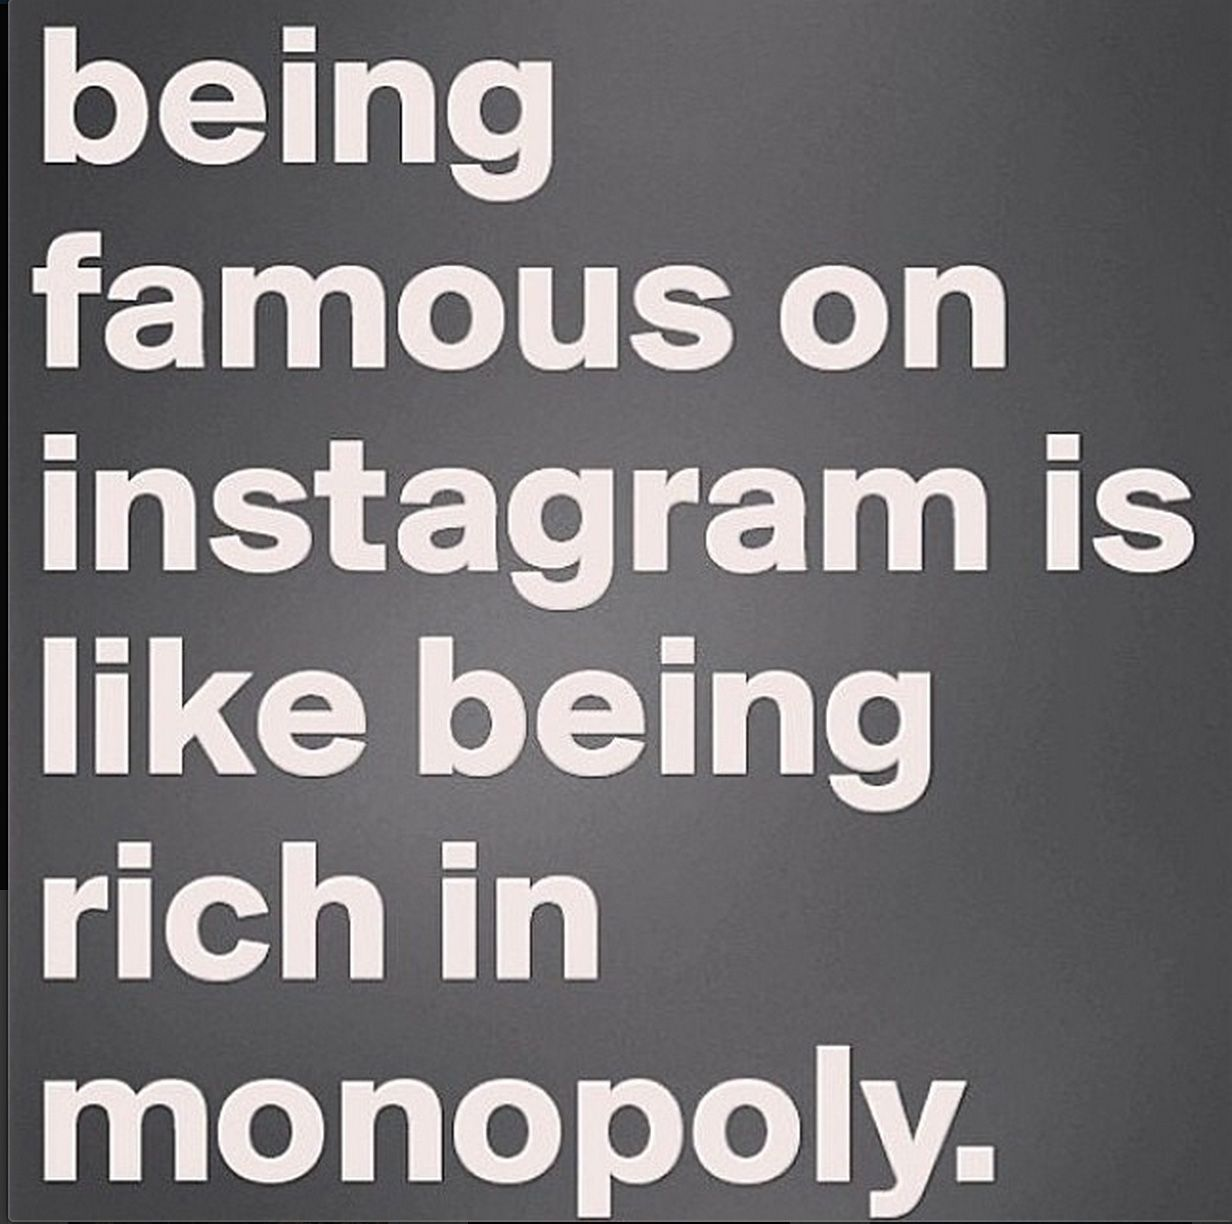 Funny Quotes About Being Famous: Amazing How A Couple Idiots Think Editing Their Over